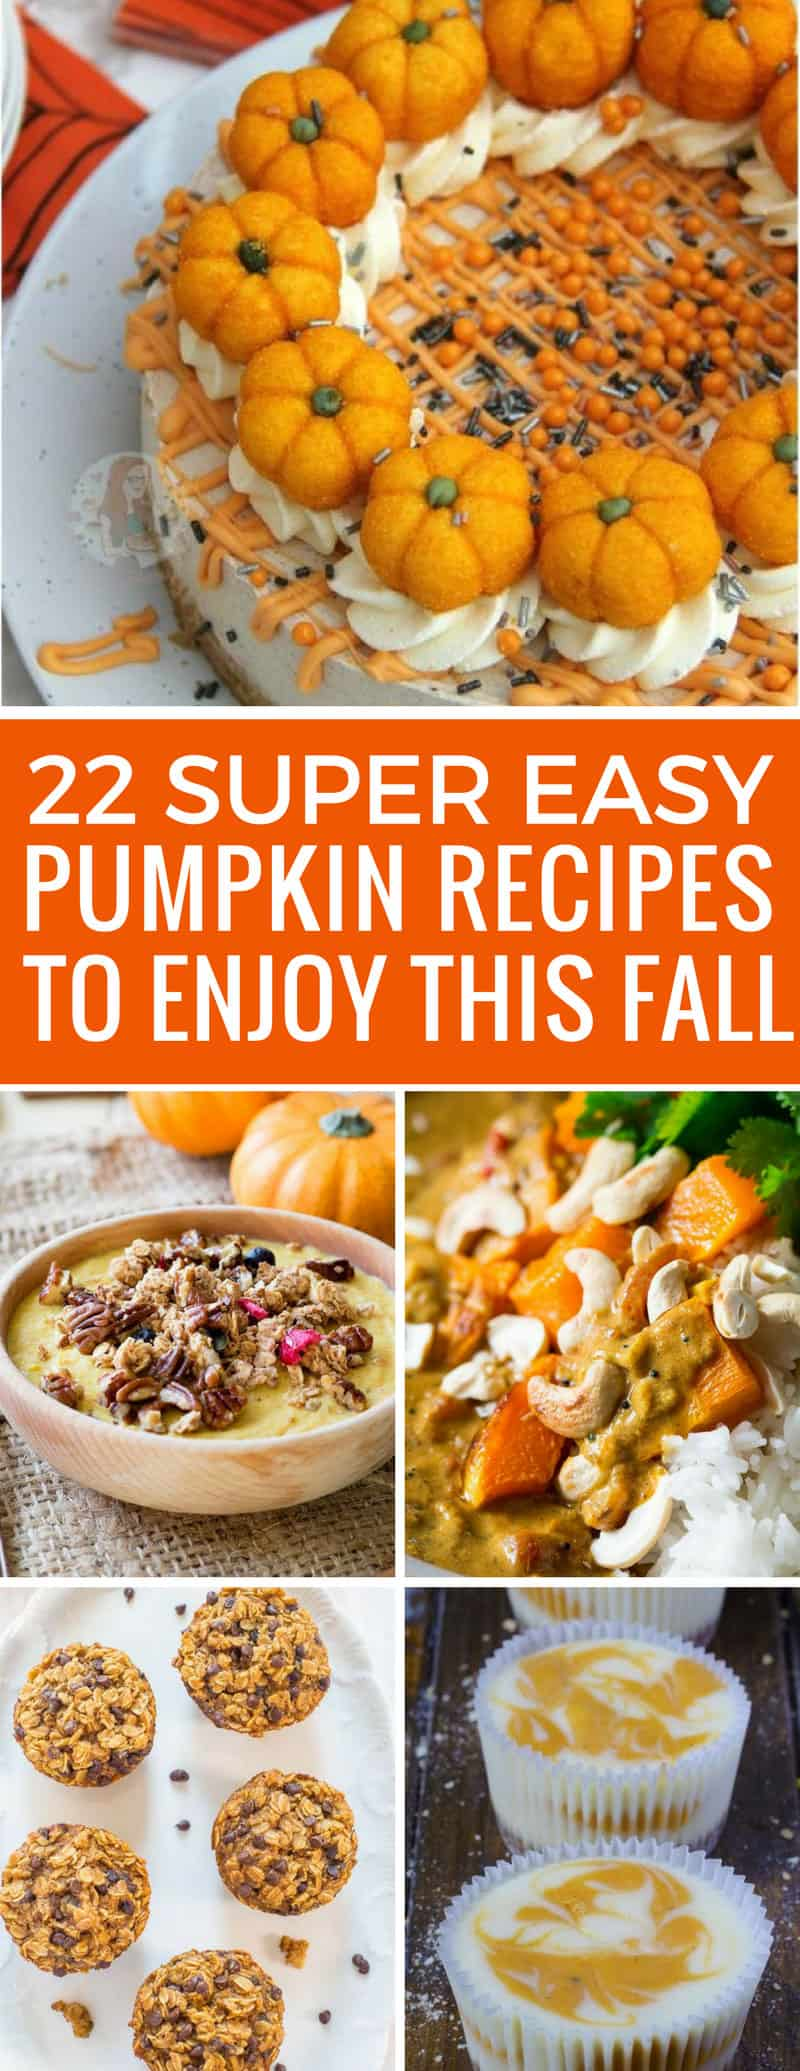 We can never have enough easy pumpkin recipes in our meal plan -so I'll be adding most of these! Thanks for sharing!